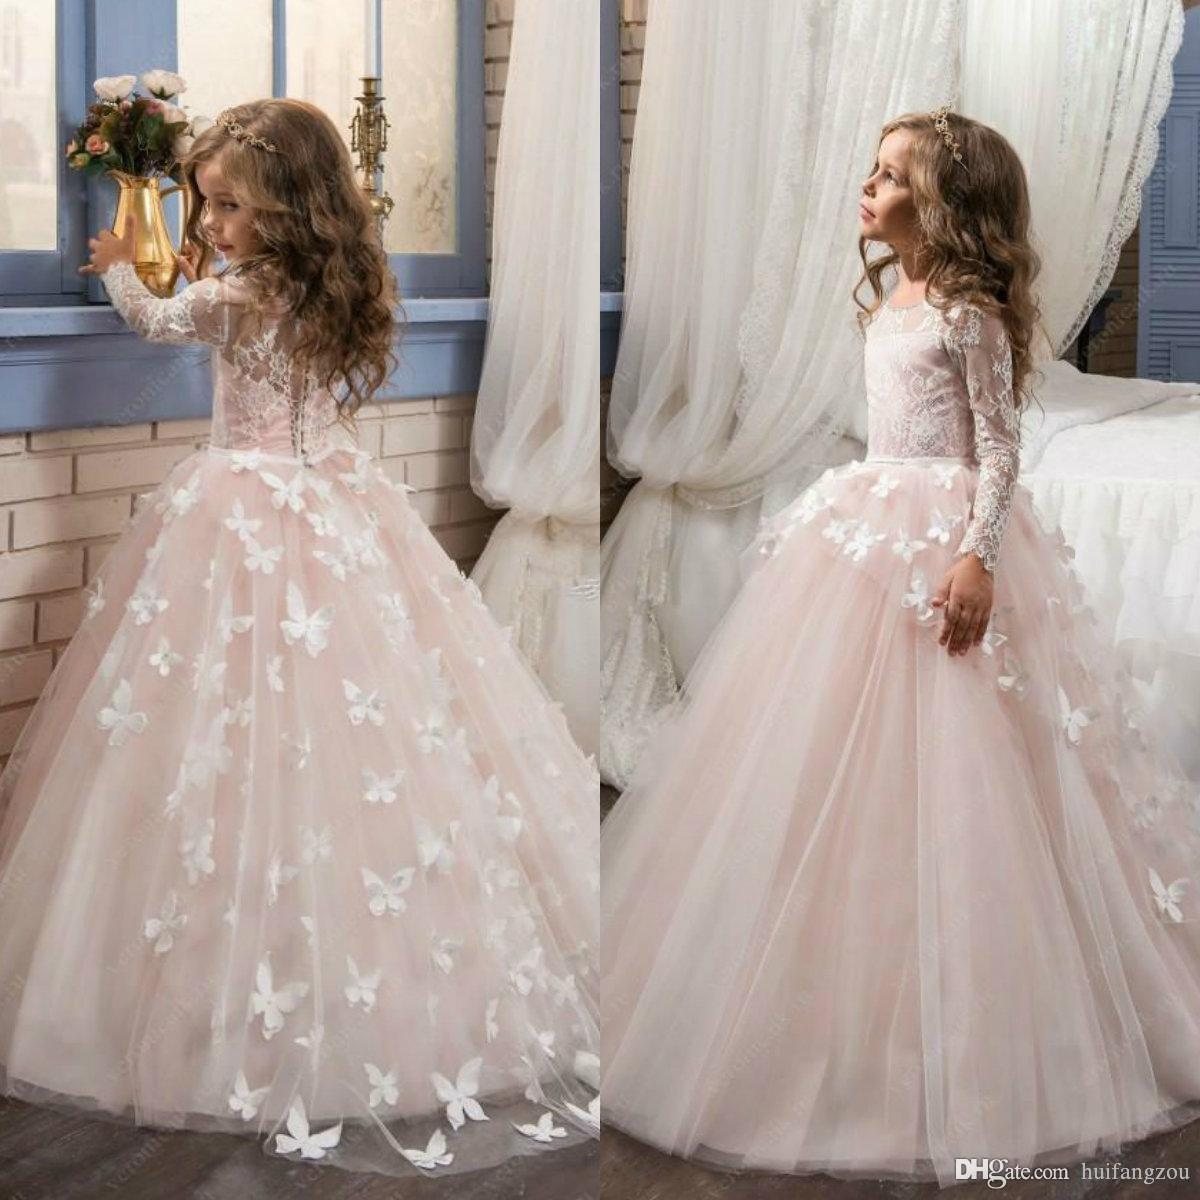 41ac9750779a4 2019 Lovely Pink Flower Girl Dresses For Weddings 3D Butterfly Appliques Ball  Gown Girls Pageant Dresses Kids Lace Long Sleeve Formal Dress Navy Blue  Flower ...